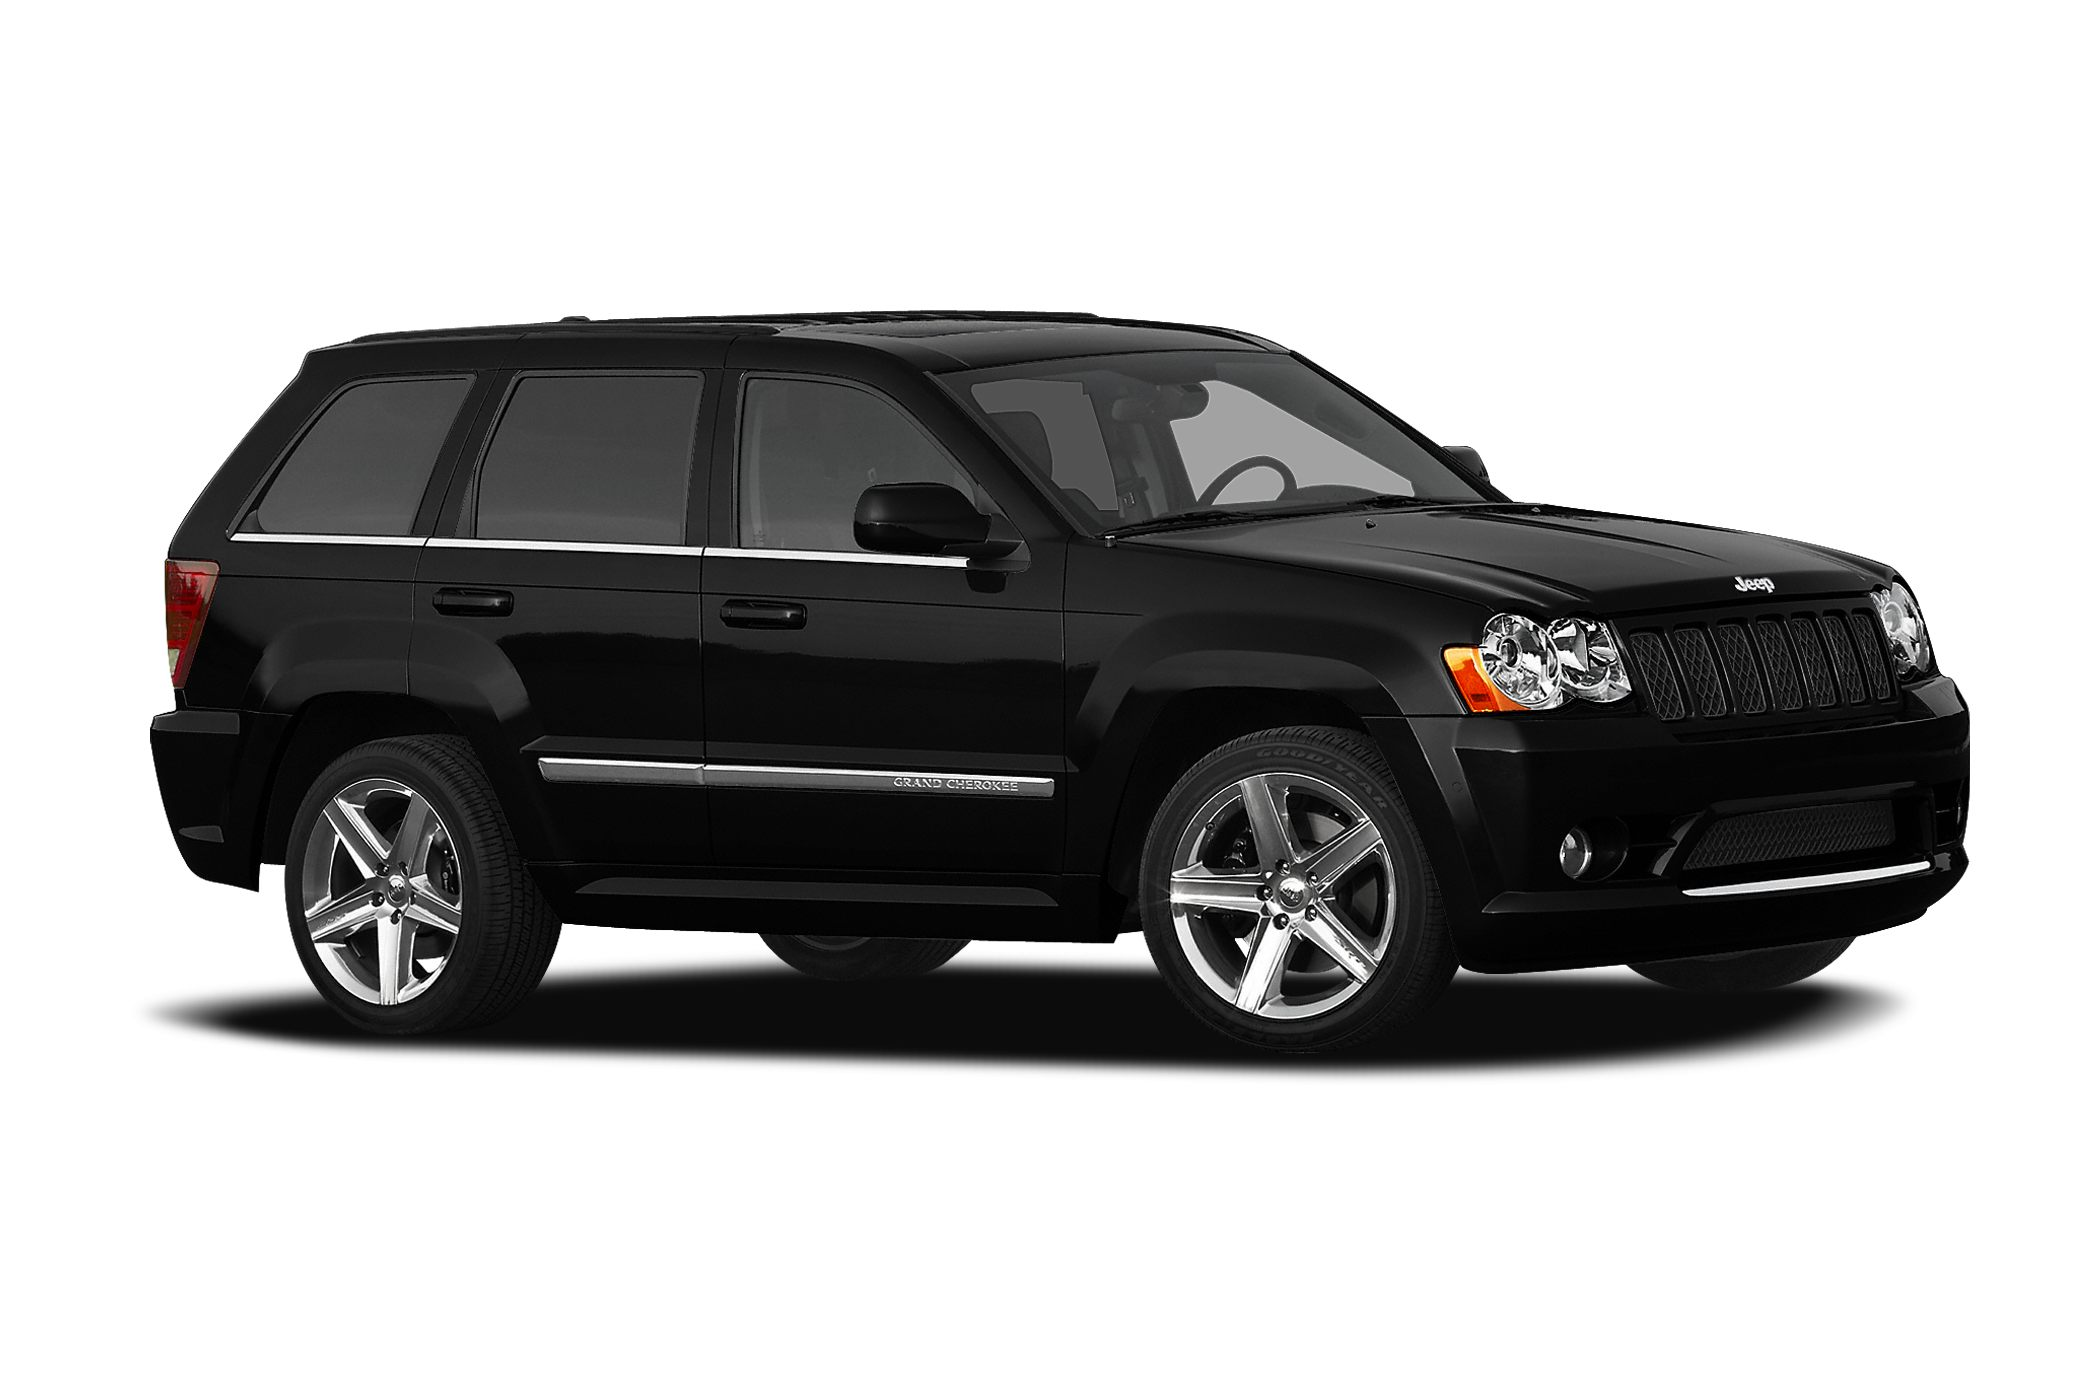 2008 jeep grand cherokee srt8 4dr 4x4 specs and prices